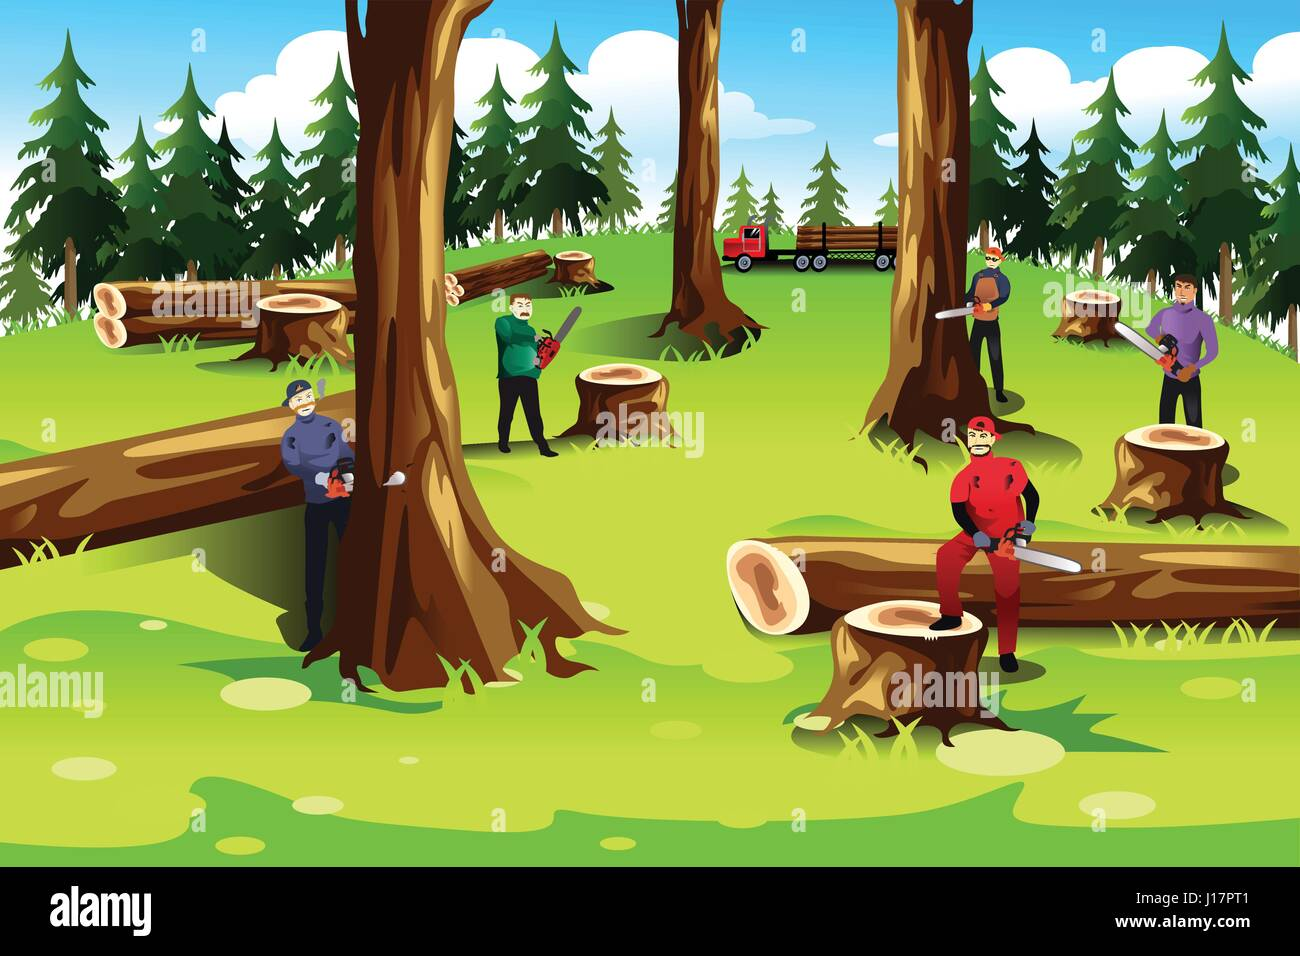 Page 3 Trees Clipart High Resolution Stock Photography And Images Alamy